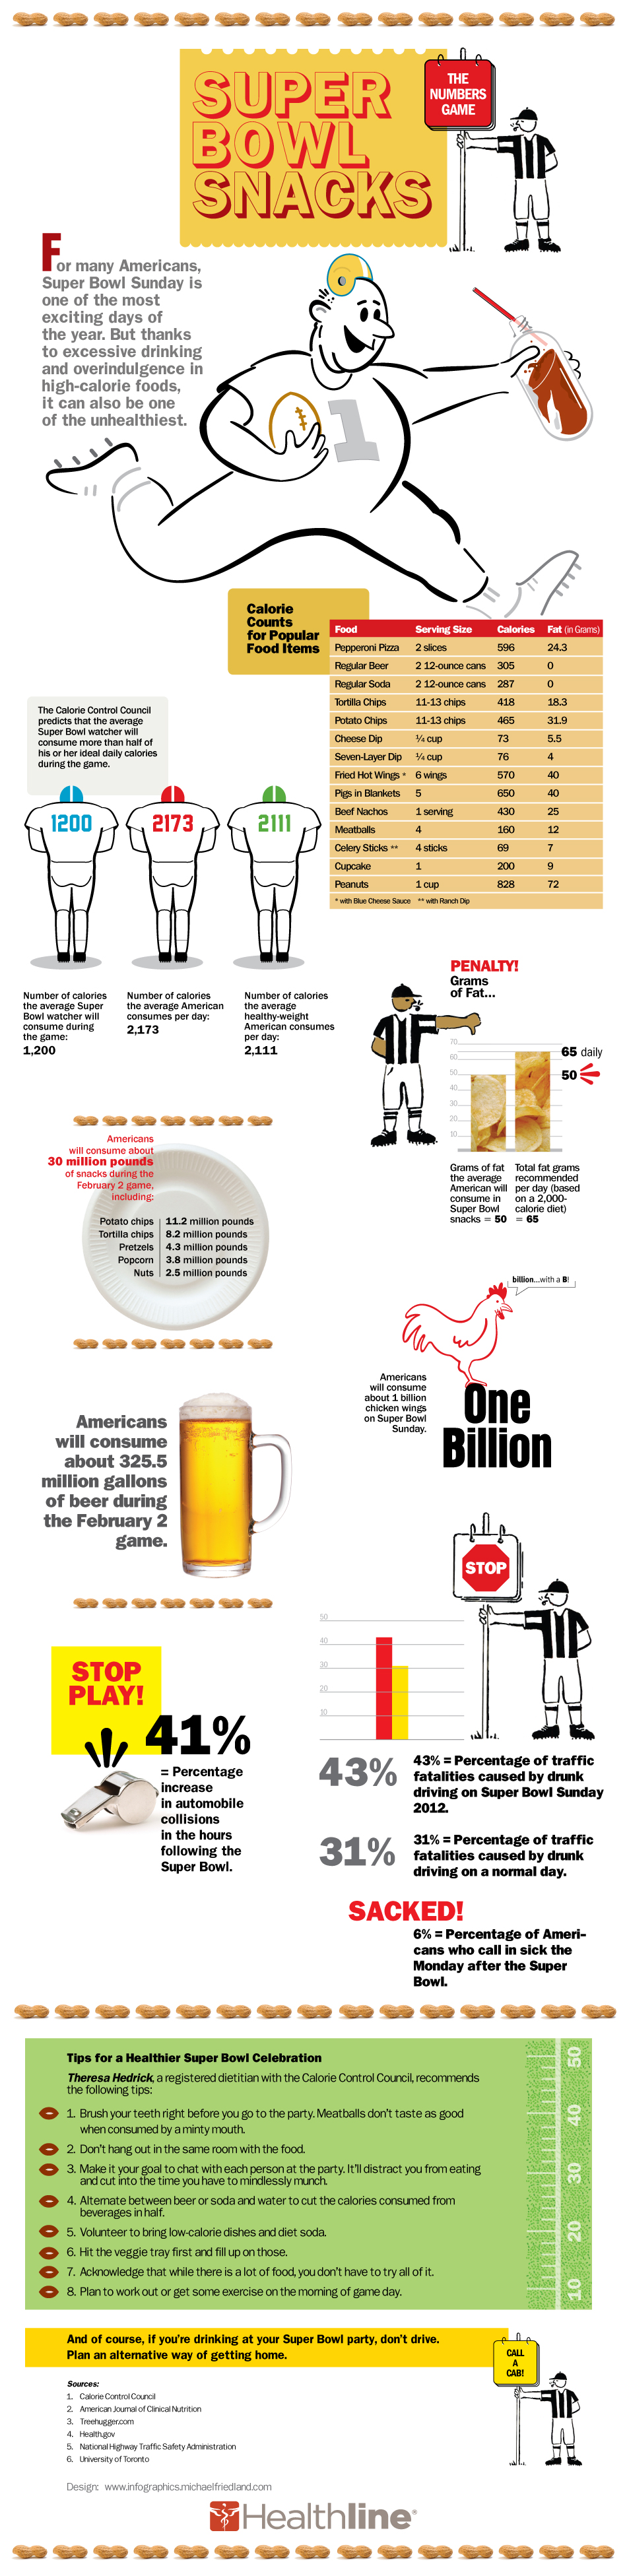 Superbowl Snacking Facts